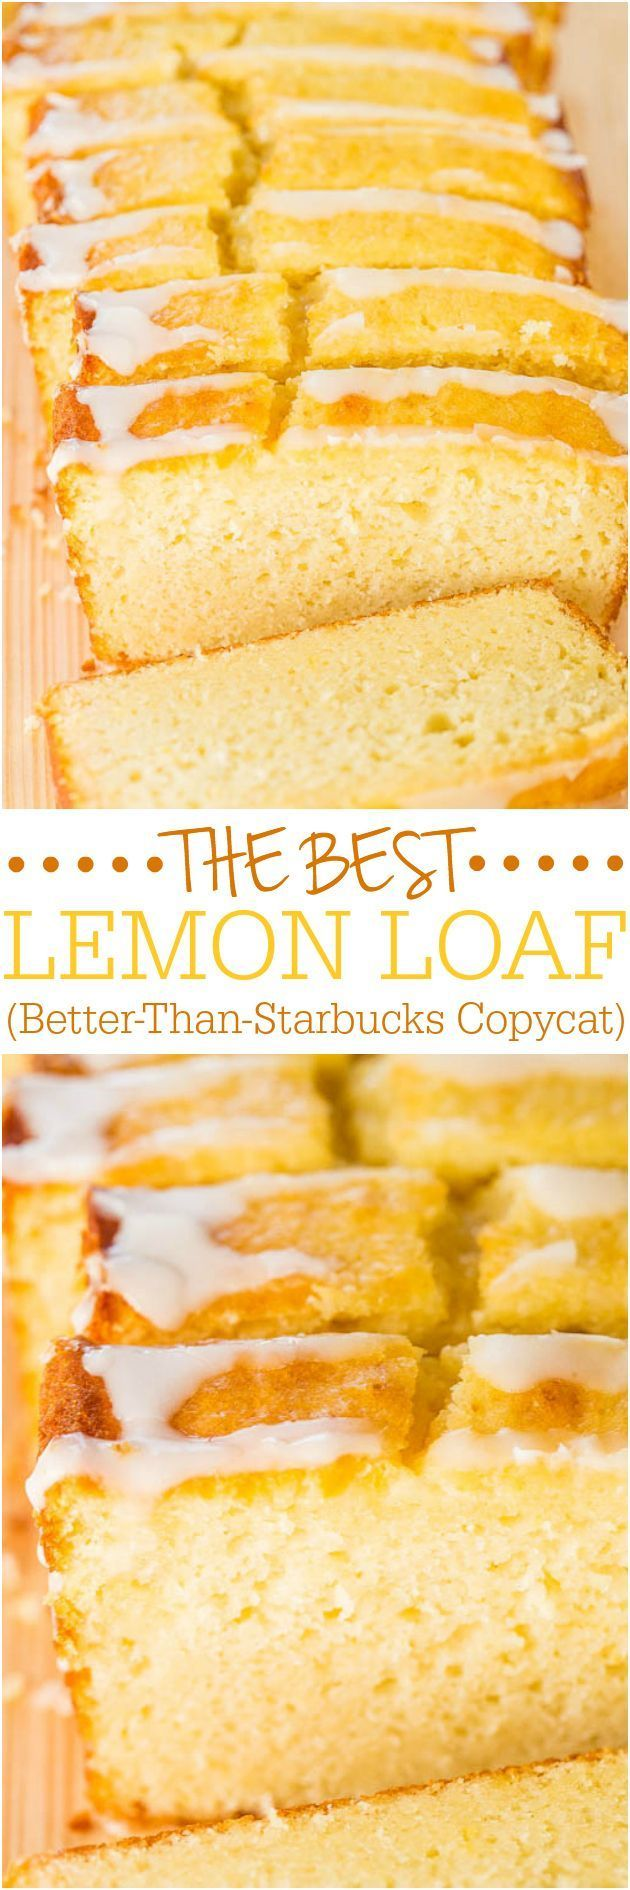 The Best Lemon Loaf (Better-Than-Starbucks Copycat) - Took years to recreated! Easy, no mixer, no cake mix, dangerously good!